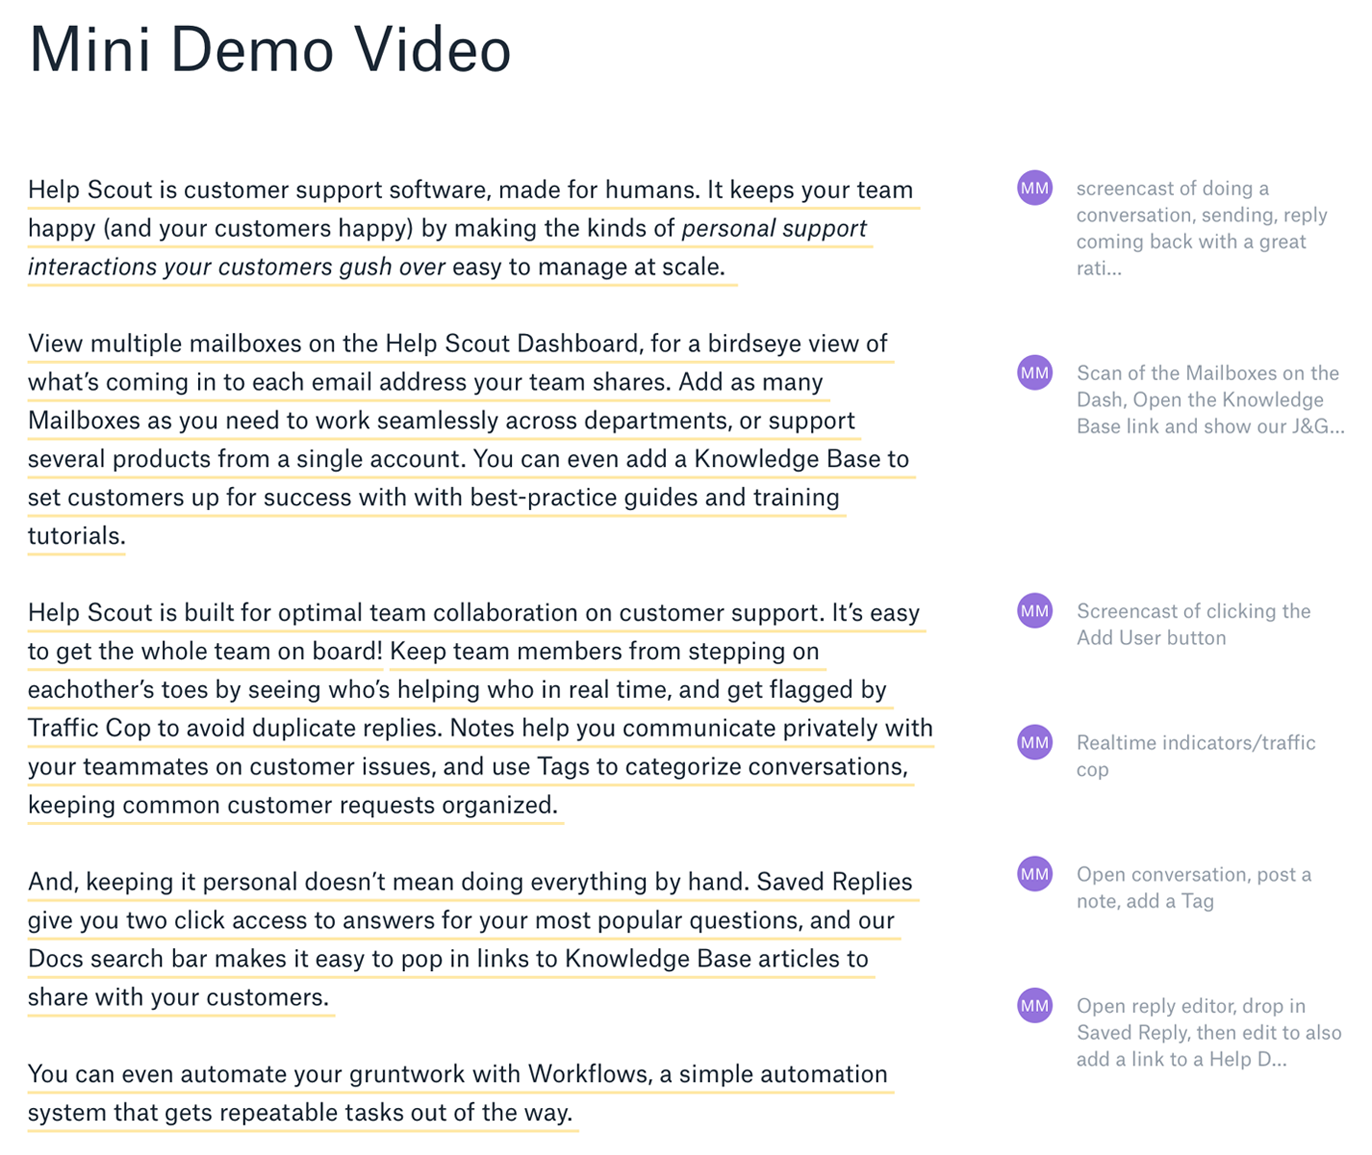 How to Create Video for Your Help Docs